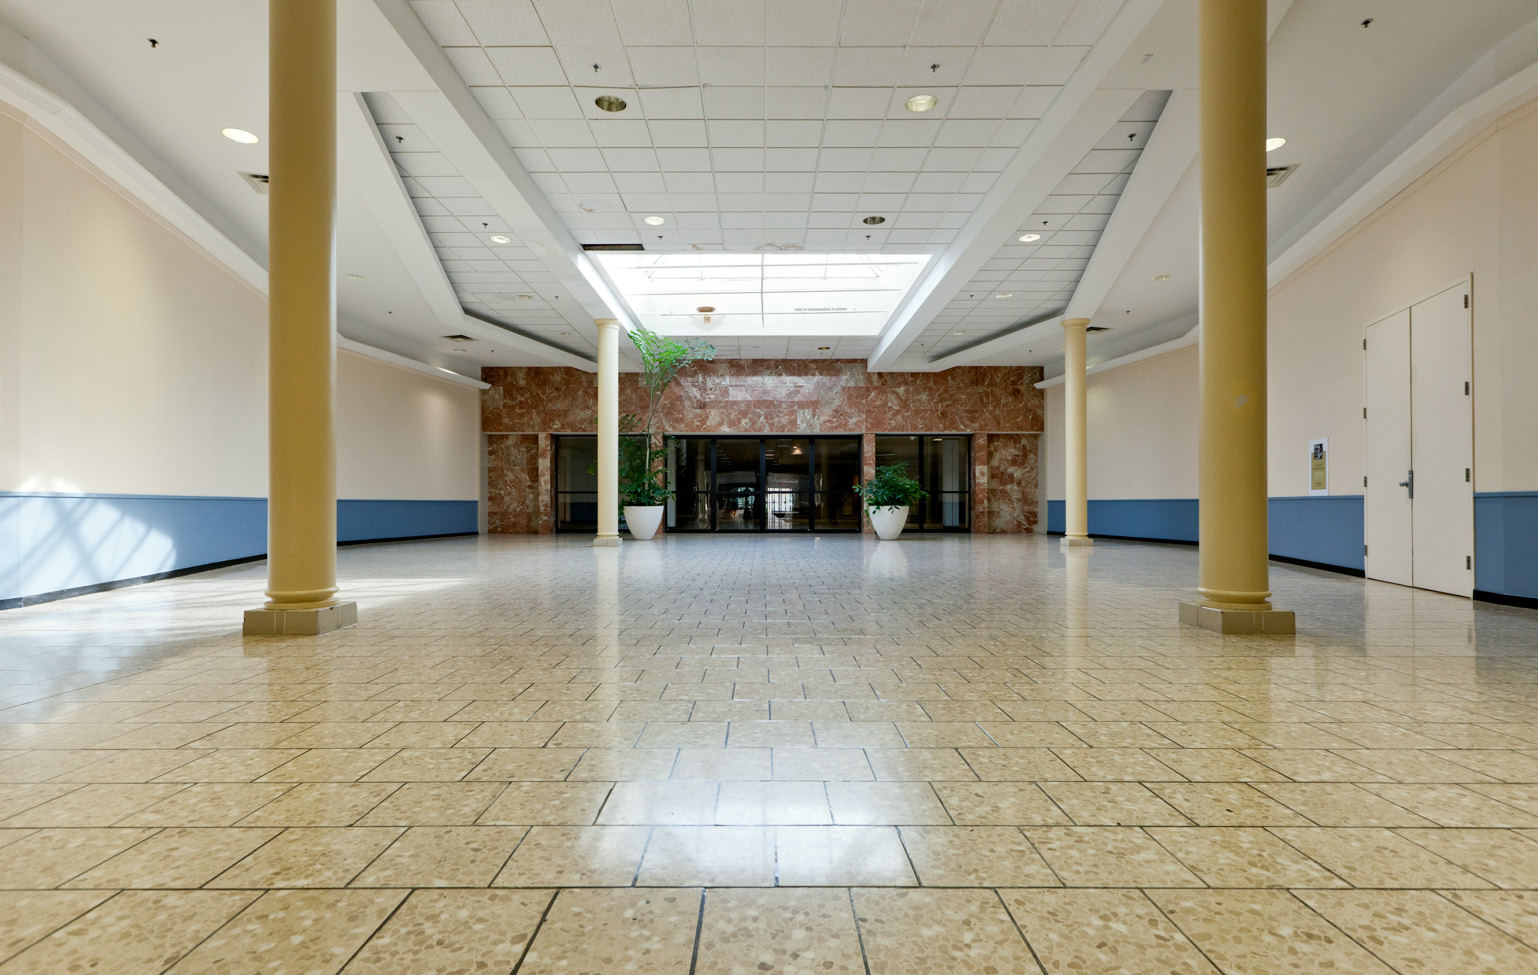 05 Southridge Mall 02.jpg